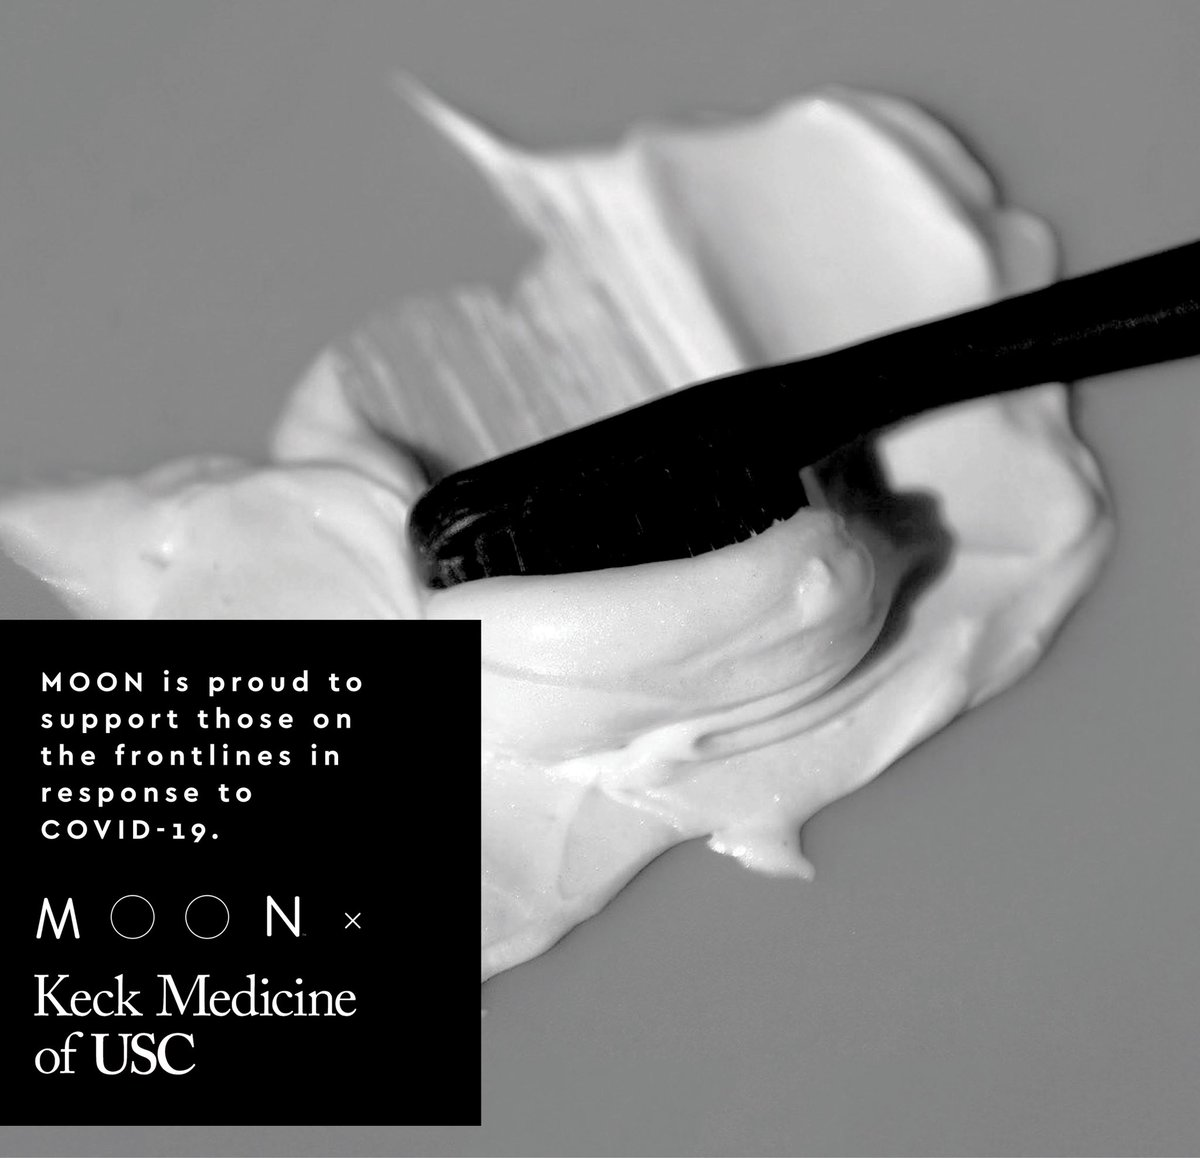 I'm working with @MoonOralCare to send product to healthcare workers that are heroically fighting COVID-19 at the Keck Medicine of USC centers. Sending 🖤 to everyone on the frontlines. #moon_partner